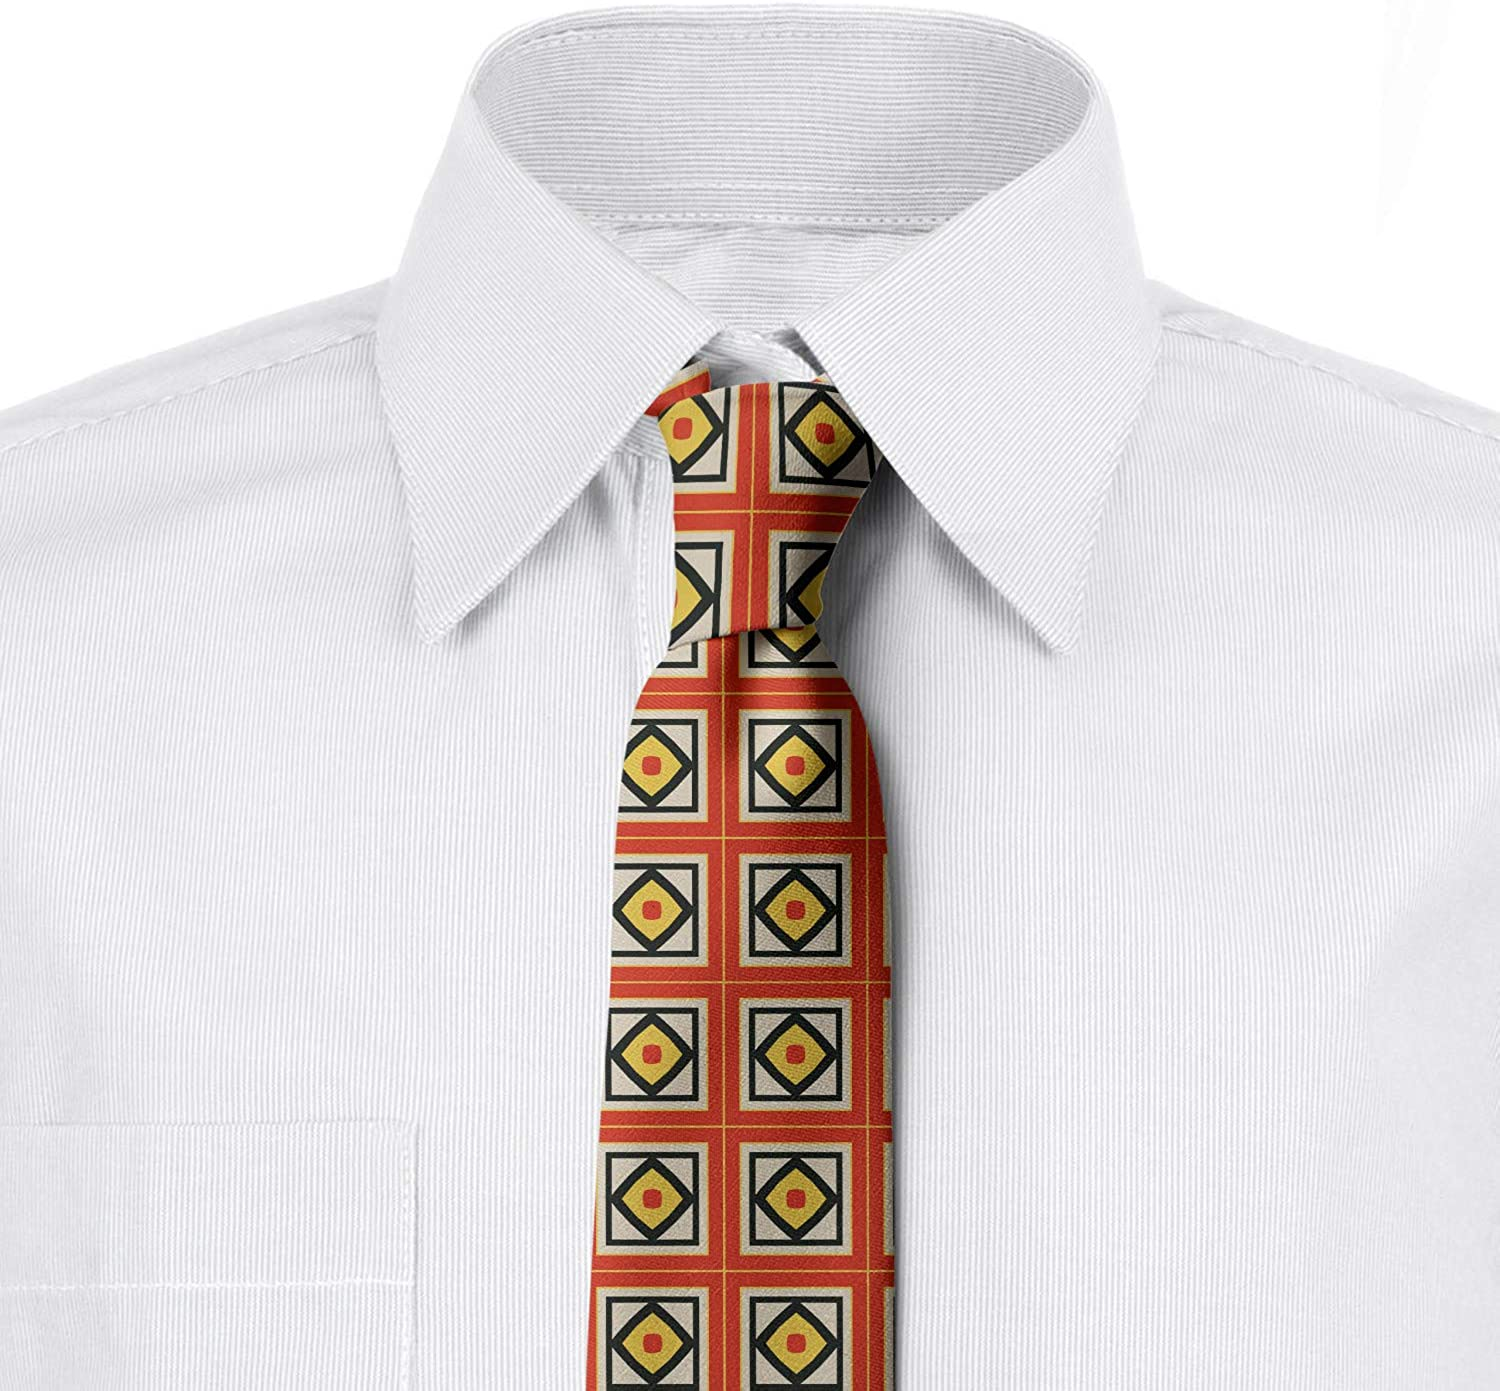 3.7 Burnt Sienna Mustard Intricate Squares Vertical and Diagonal Ambesonne Abstract Necktie